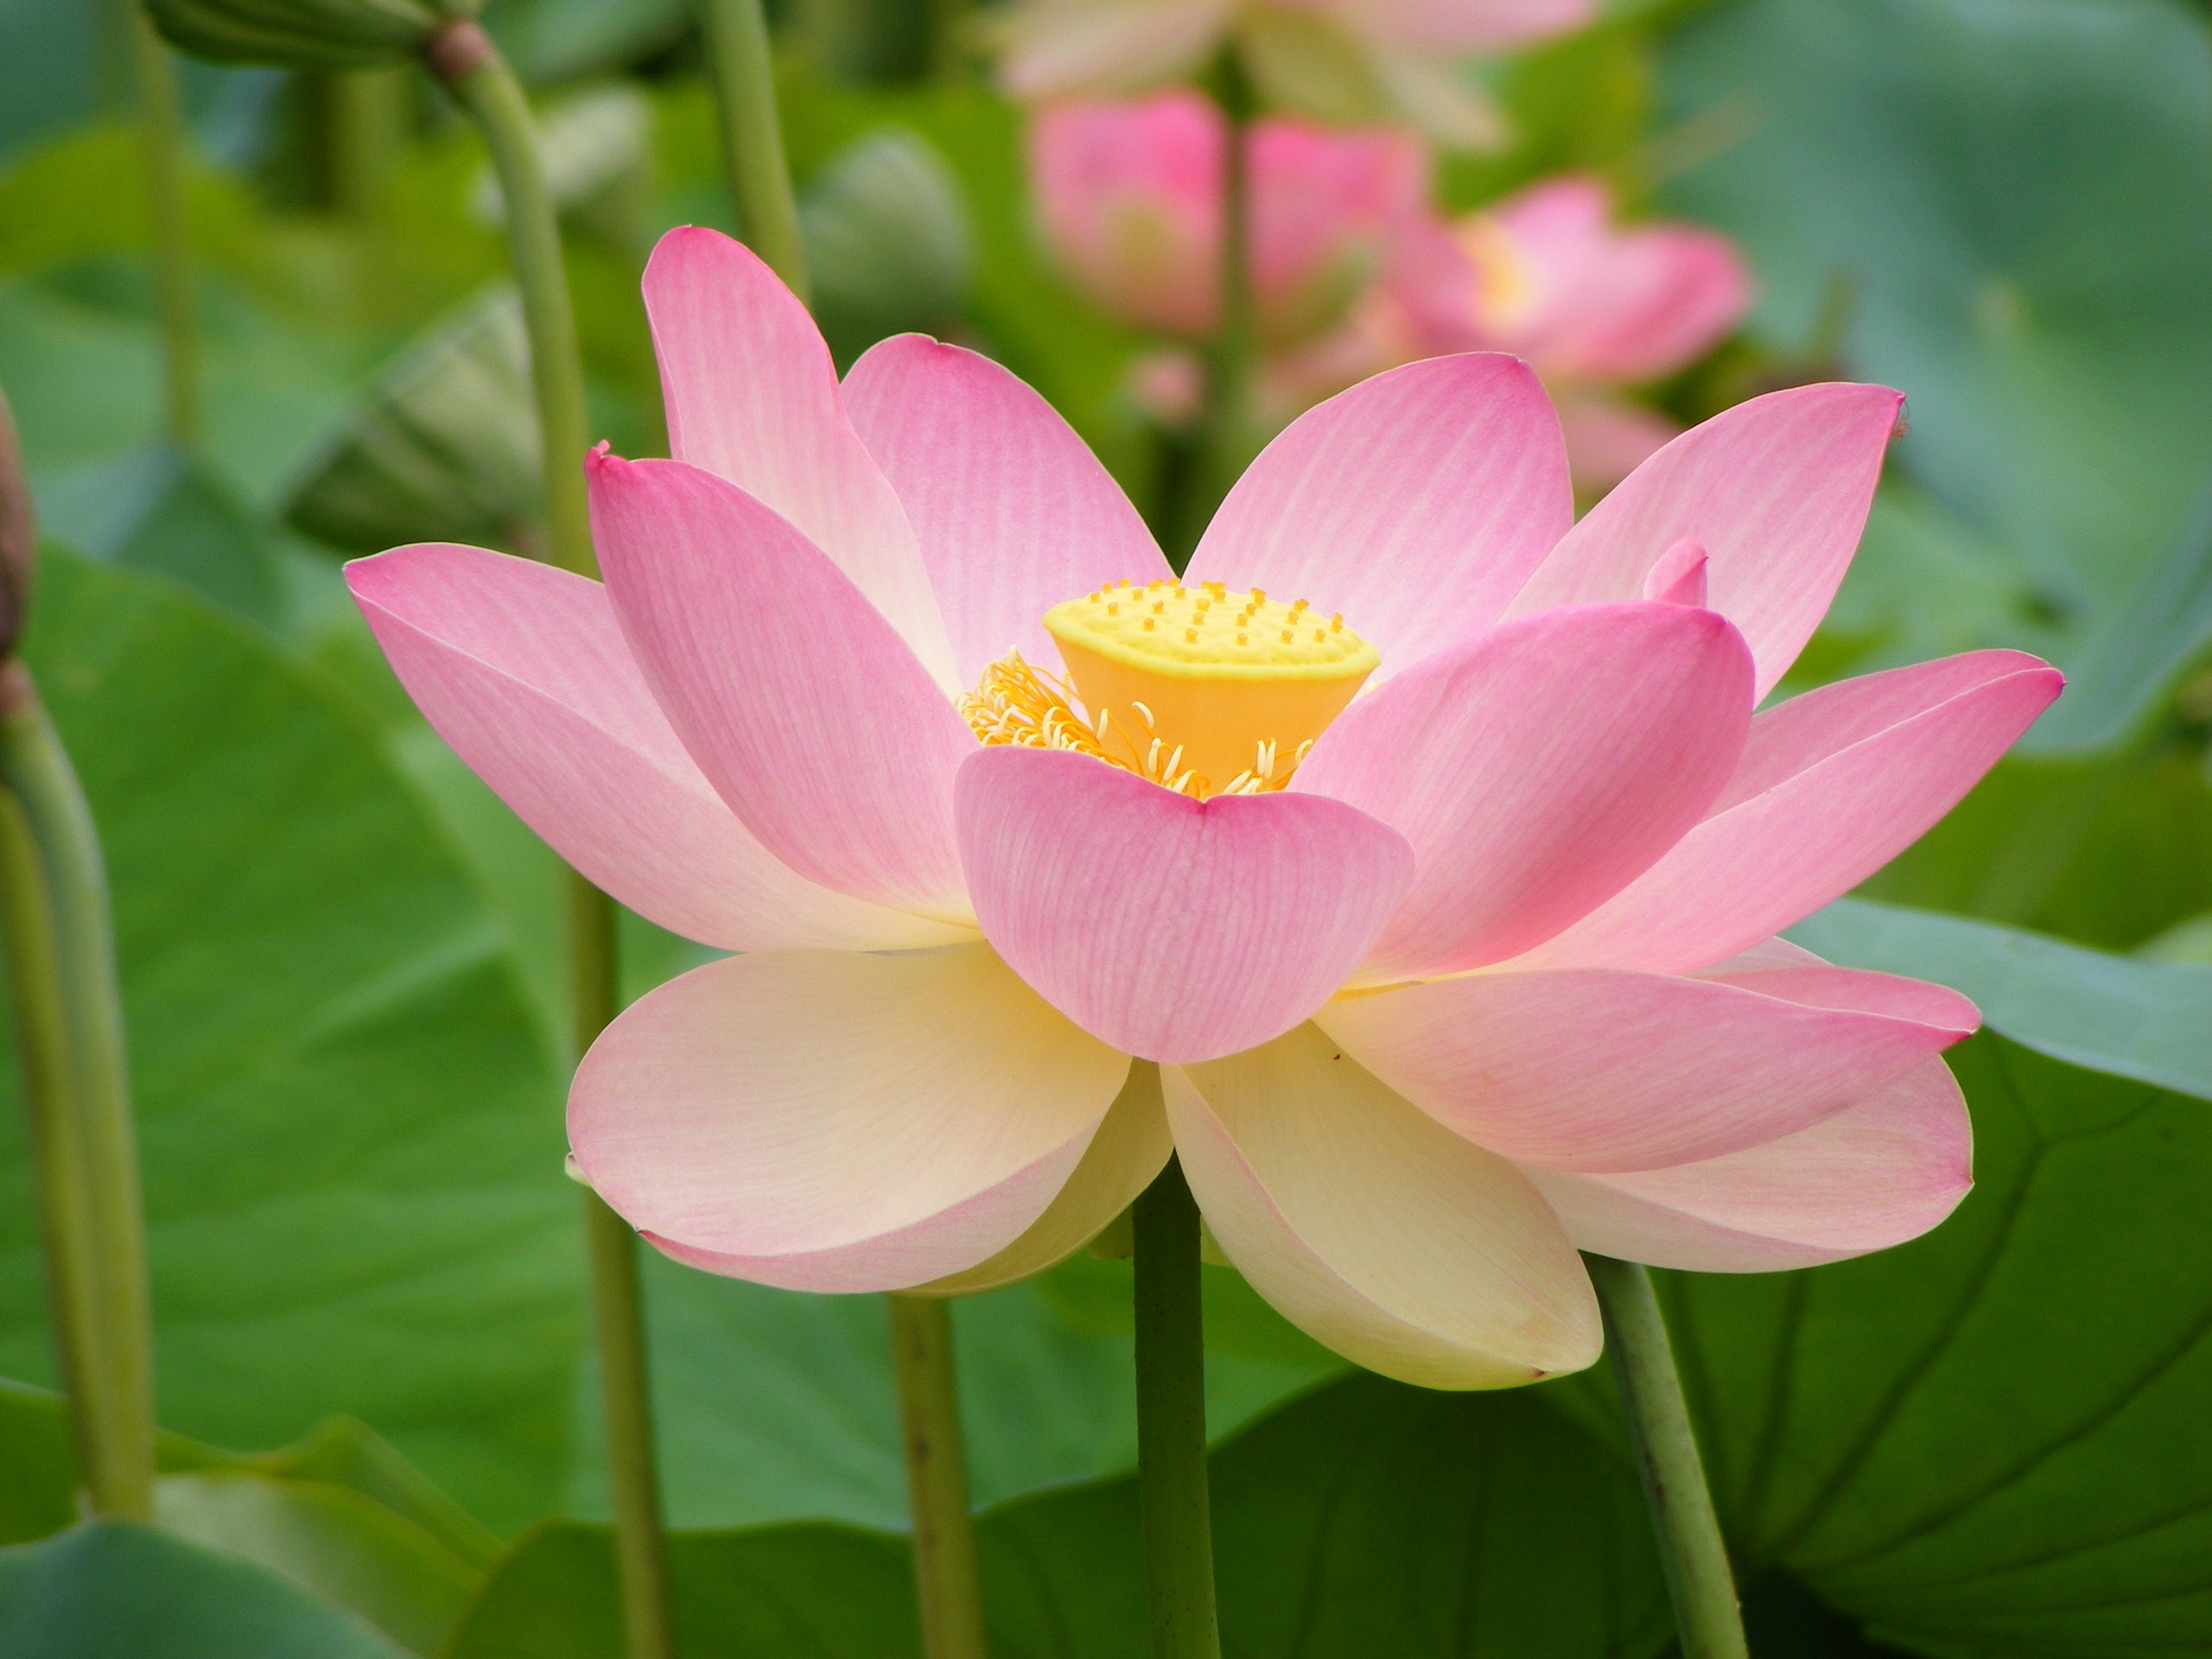 Water lily or lotus flowers 22283514 2560 1920